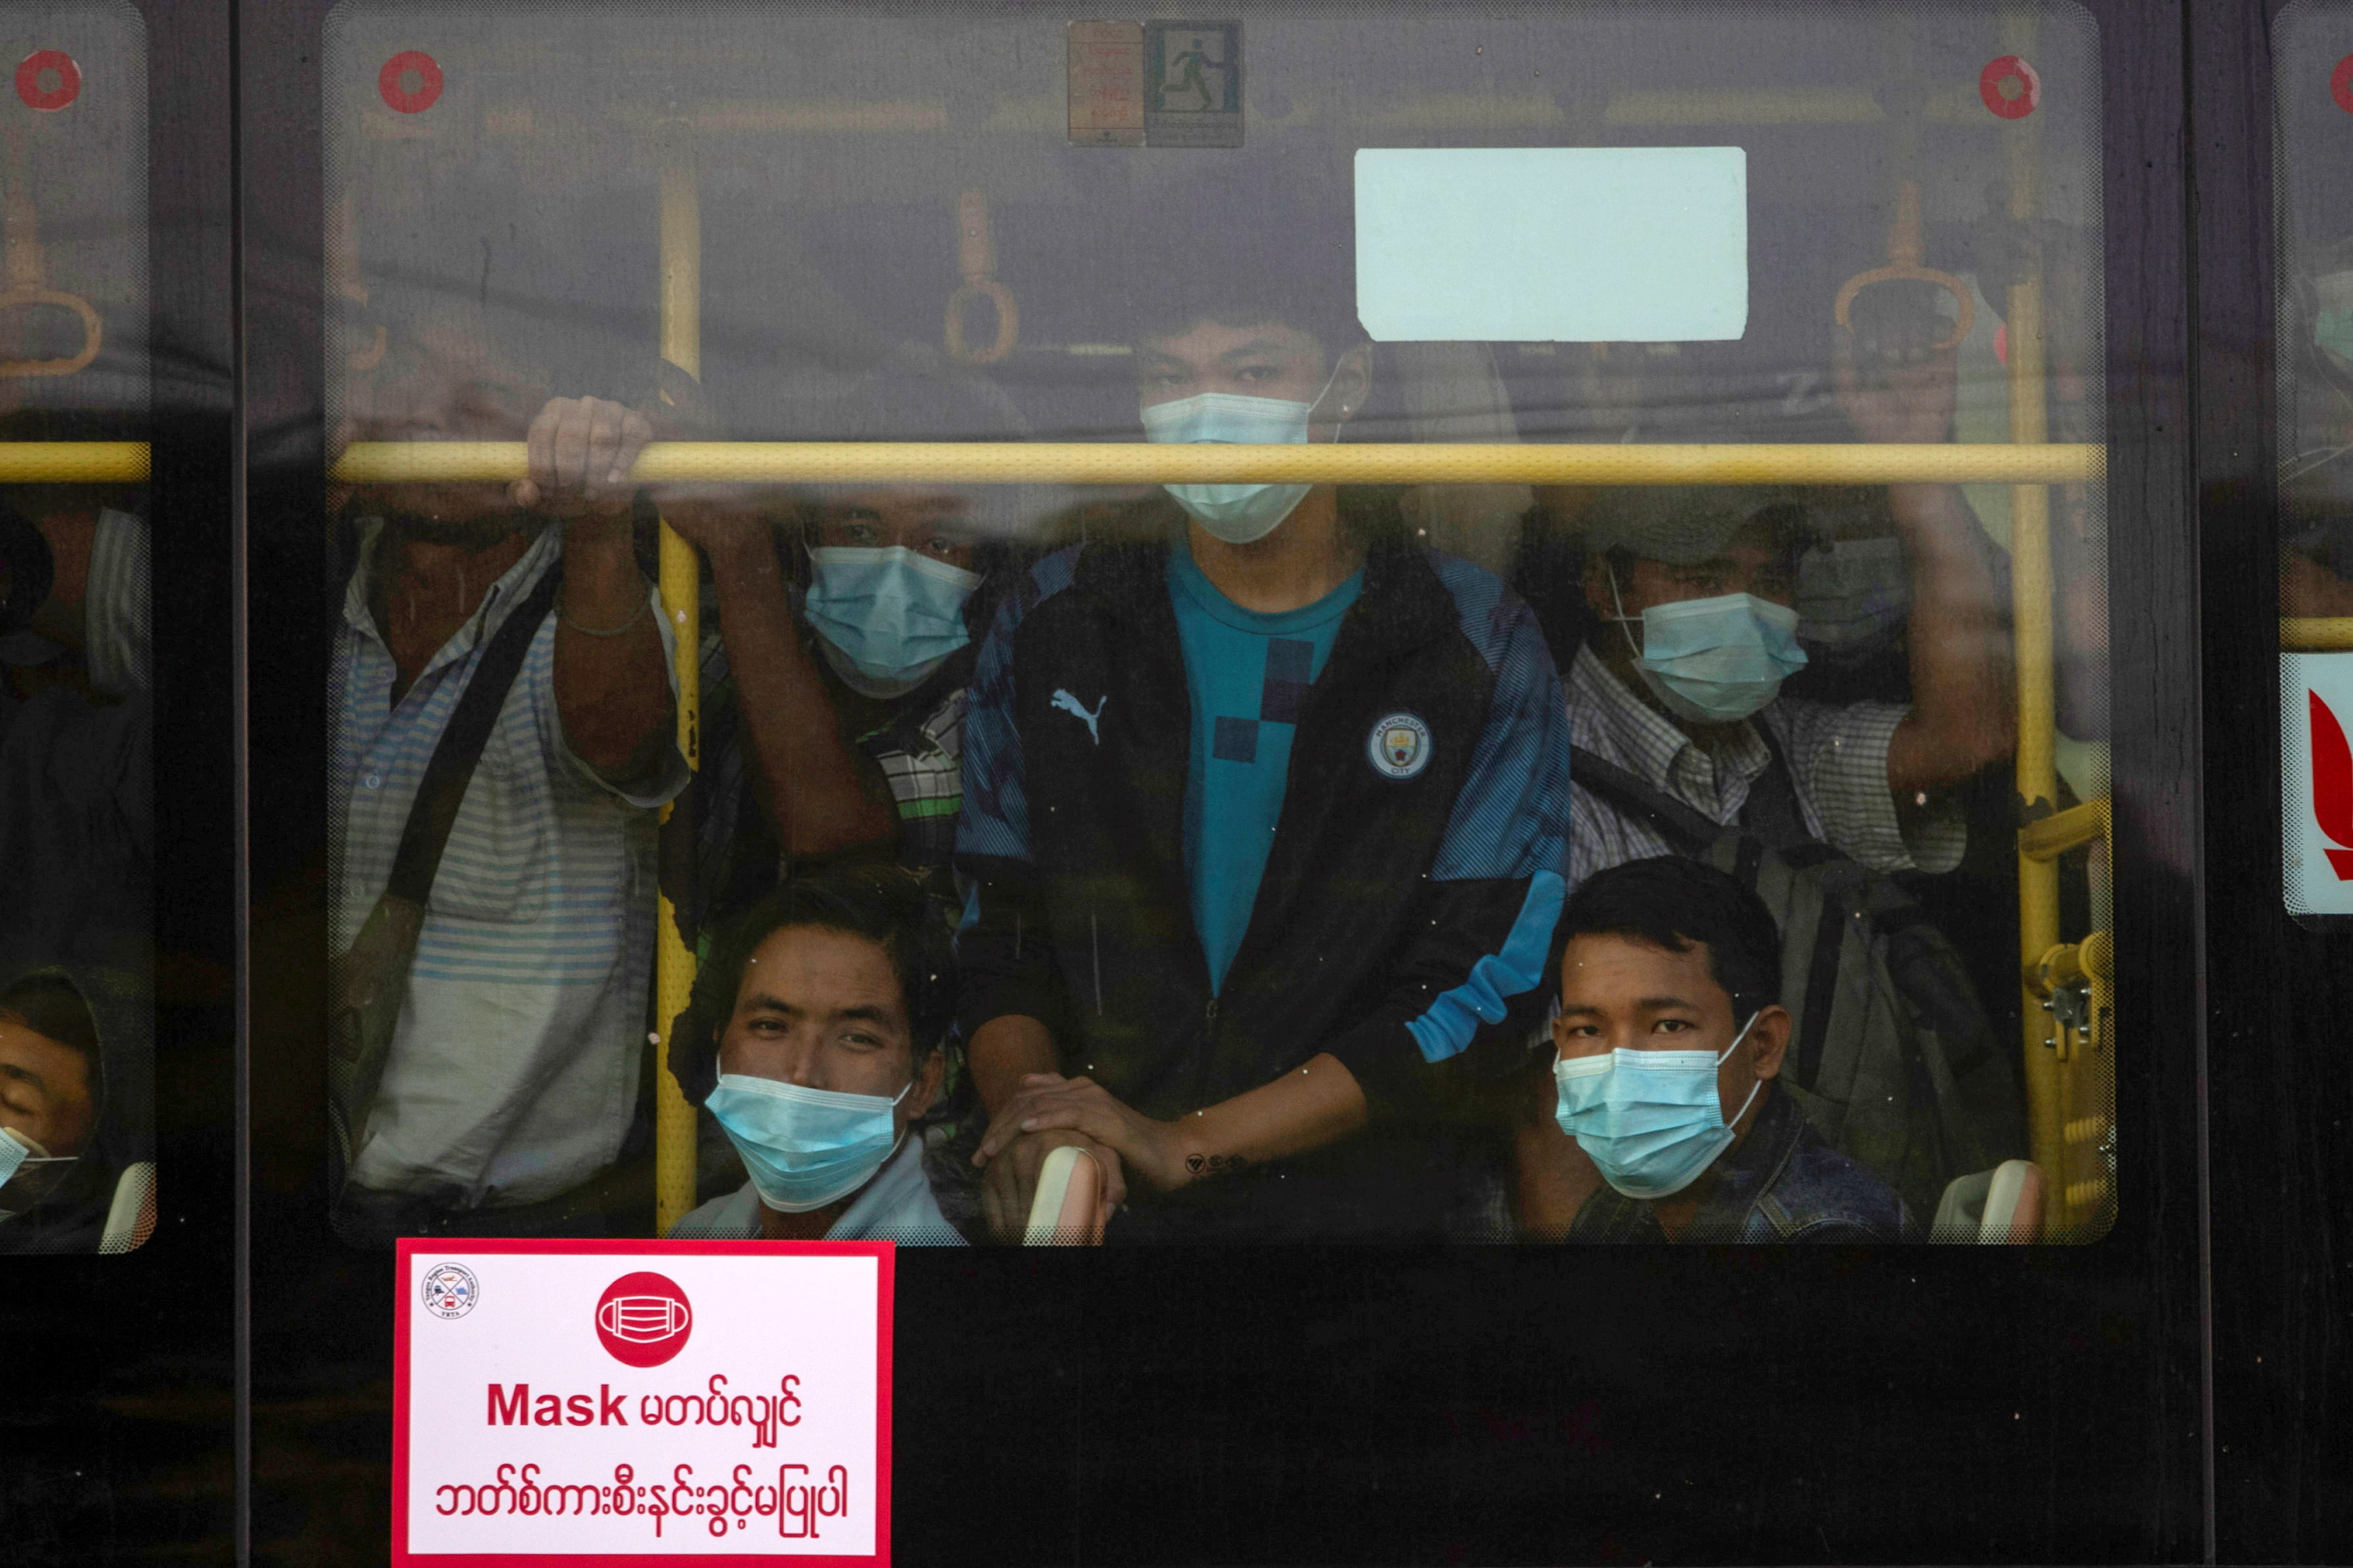 Commuters wearing protective masks ride a bus, amid the outbreak of the coronavirus disease (COVID-19), in Yangon, Myanmar, December 7, 2020. REUTERS/Shwe Paw Mya Tin